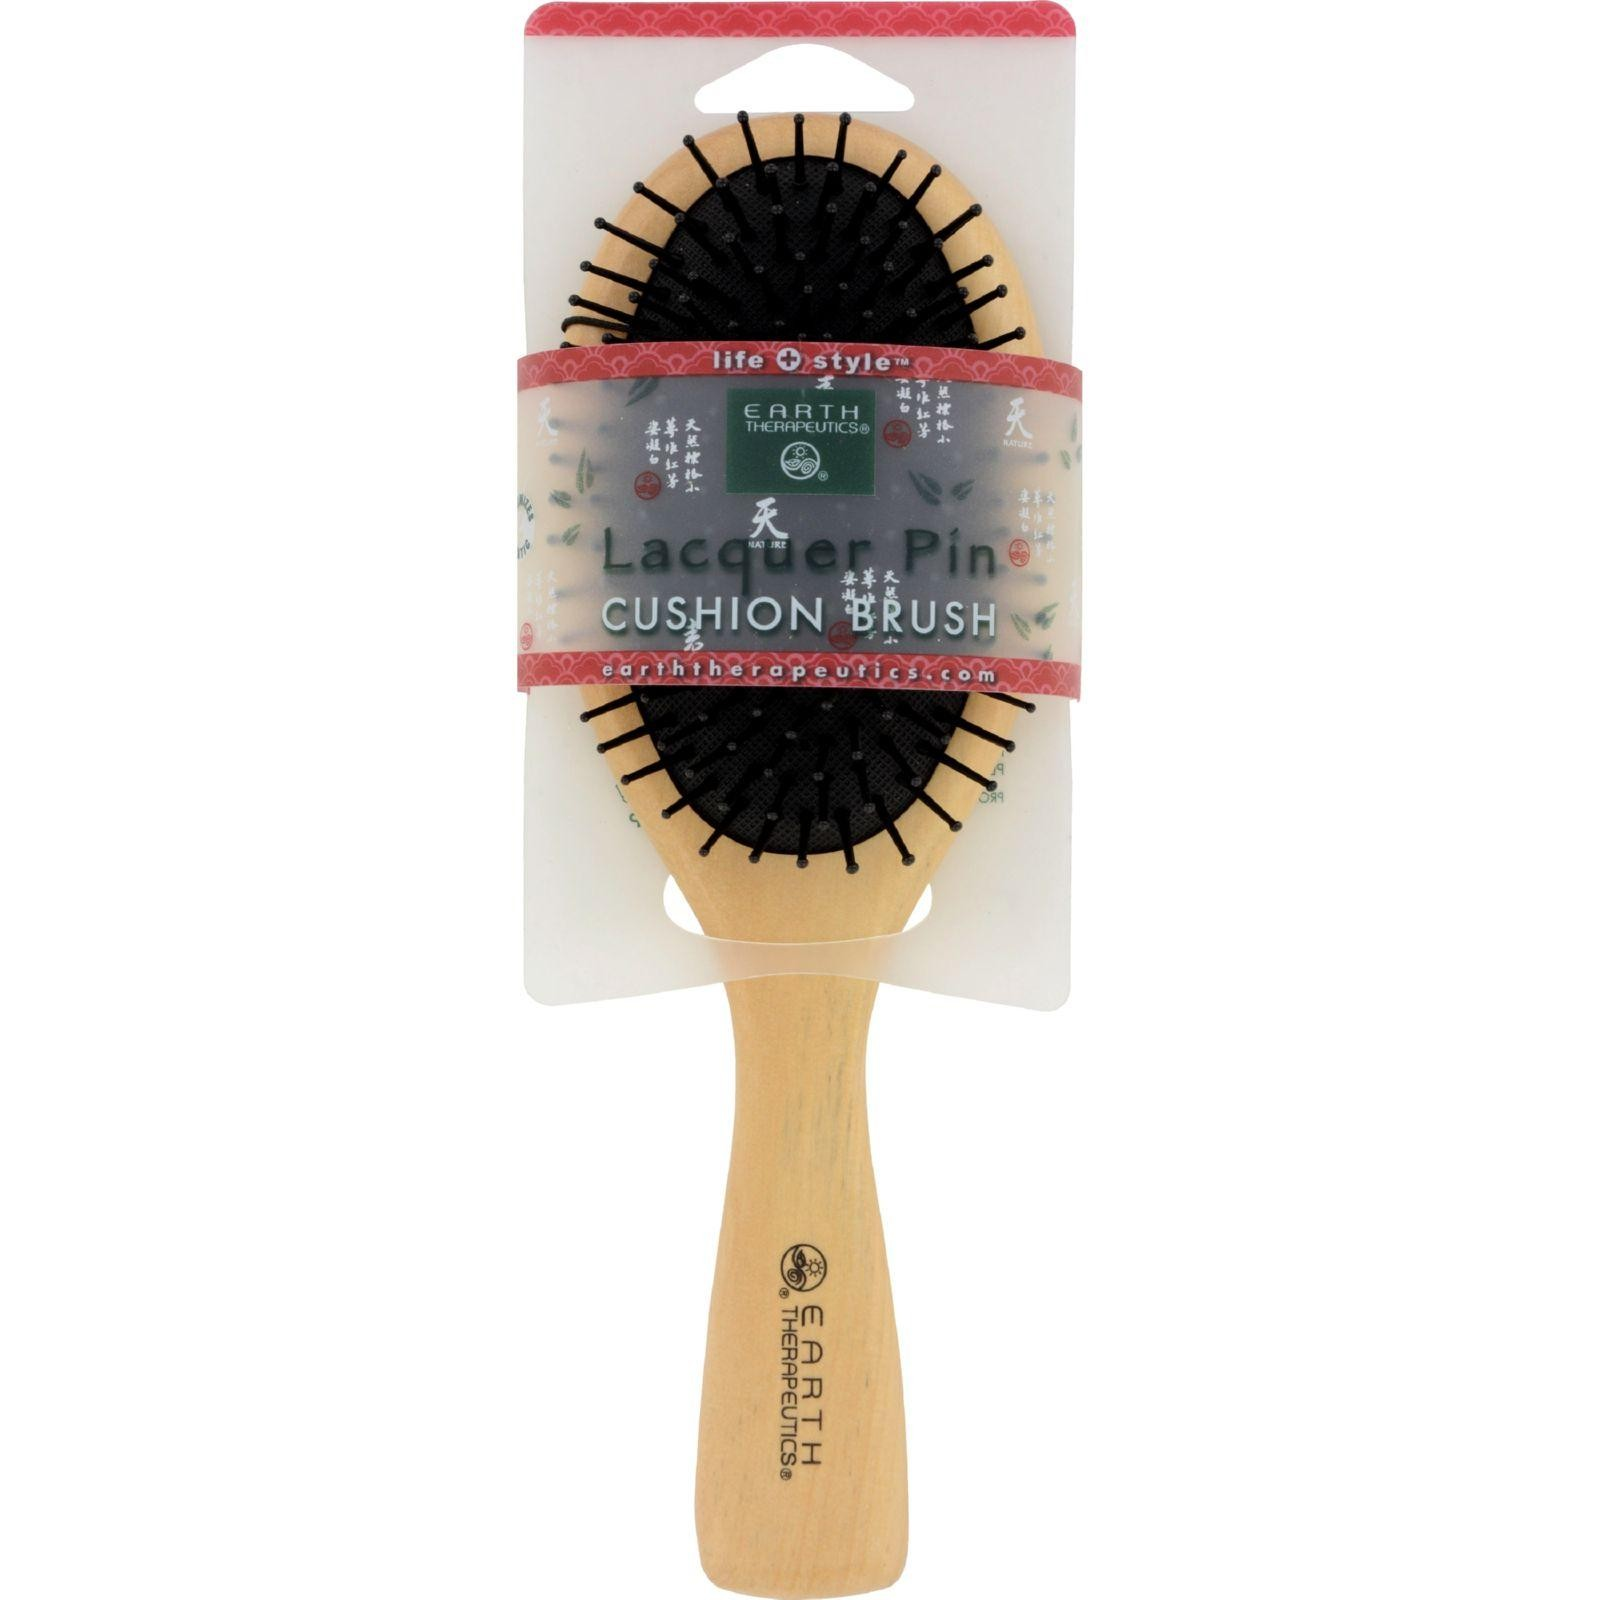 Earth Therapeutics Lacquer Pin Cushion Brush - Large - 1 Piece